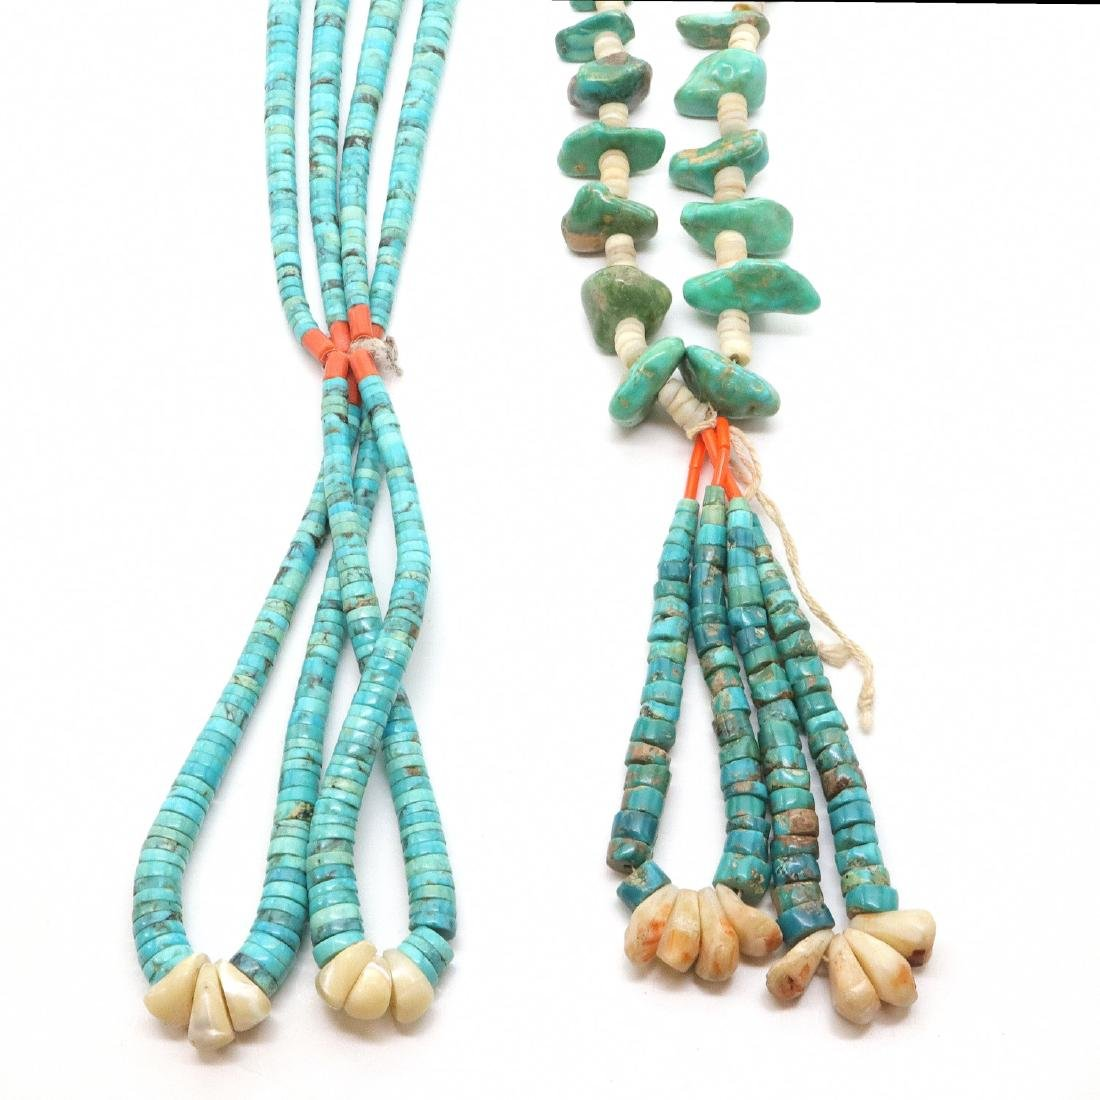 2 American Southwest Beaded Necklaces